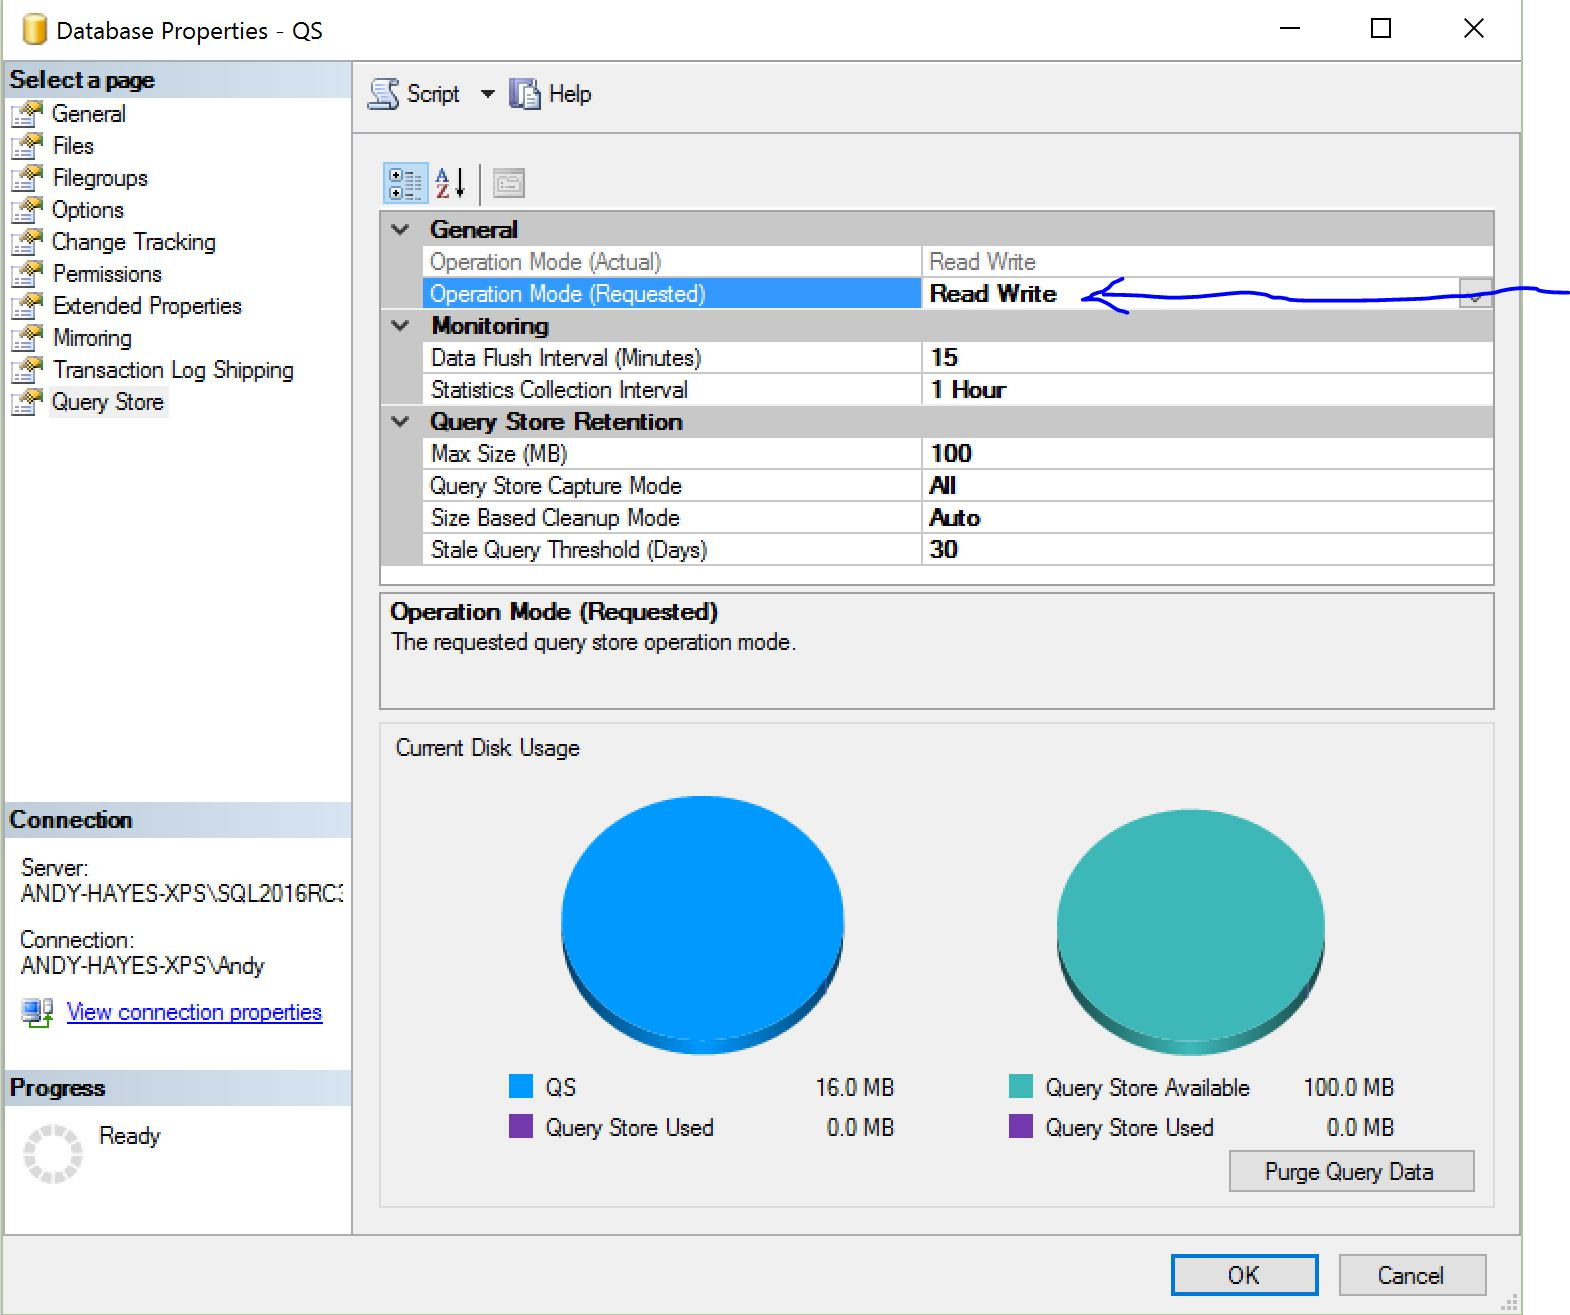 enable sql server 2016 new features query store